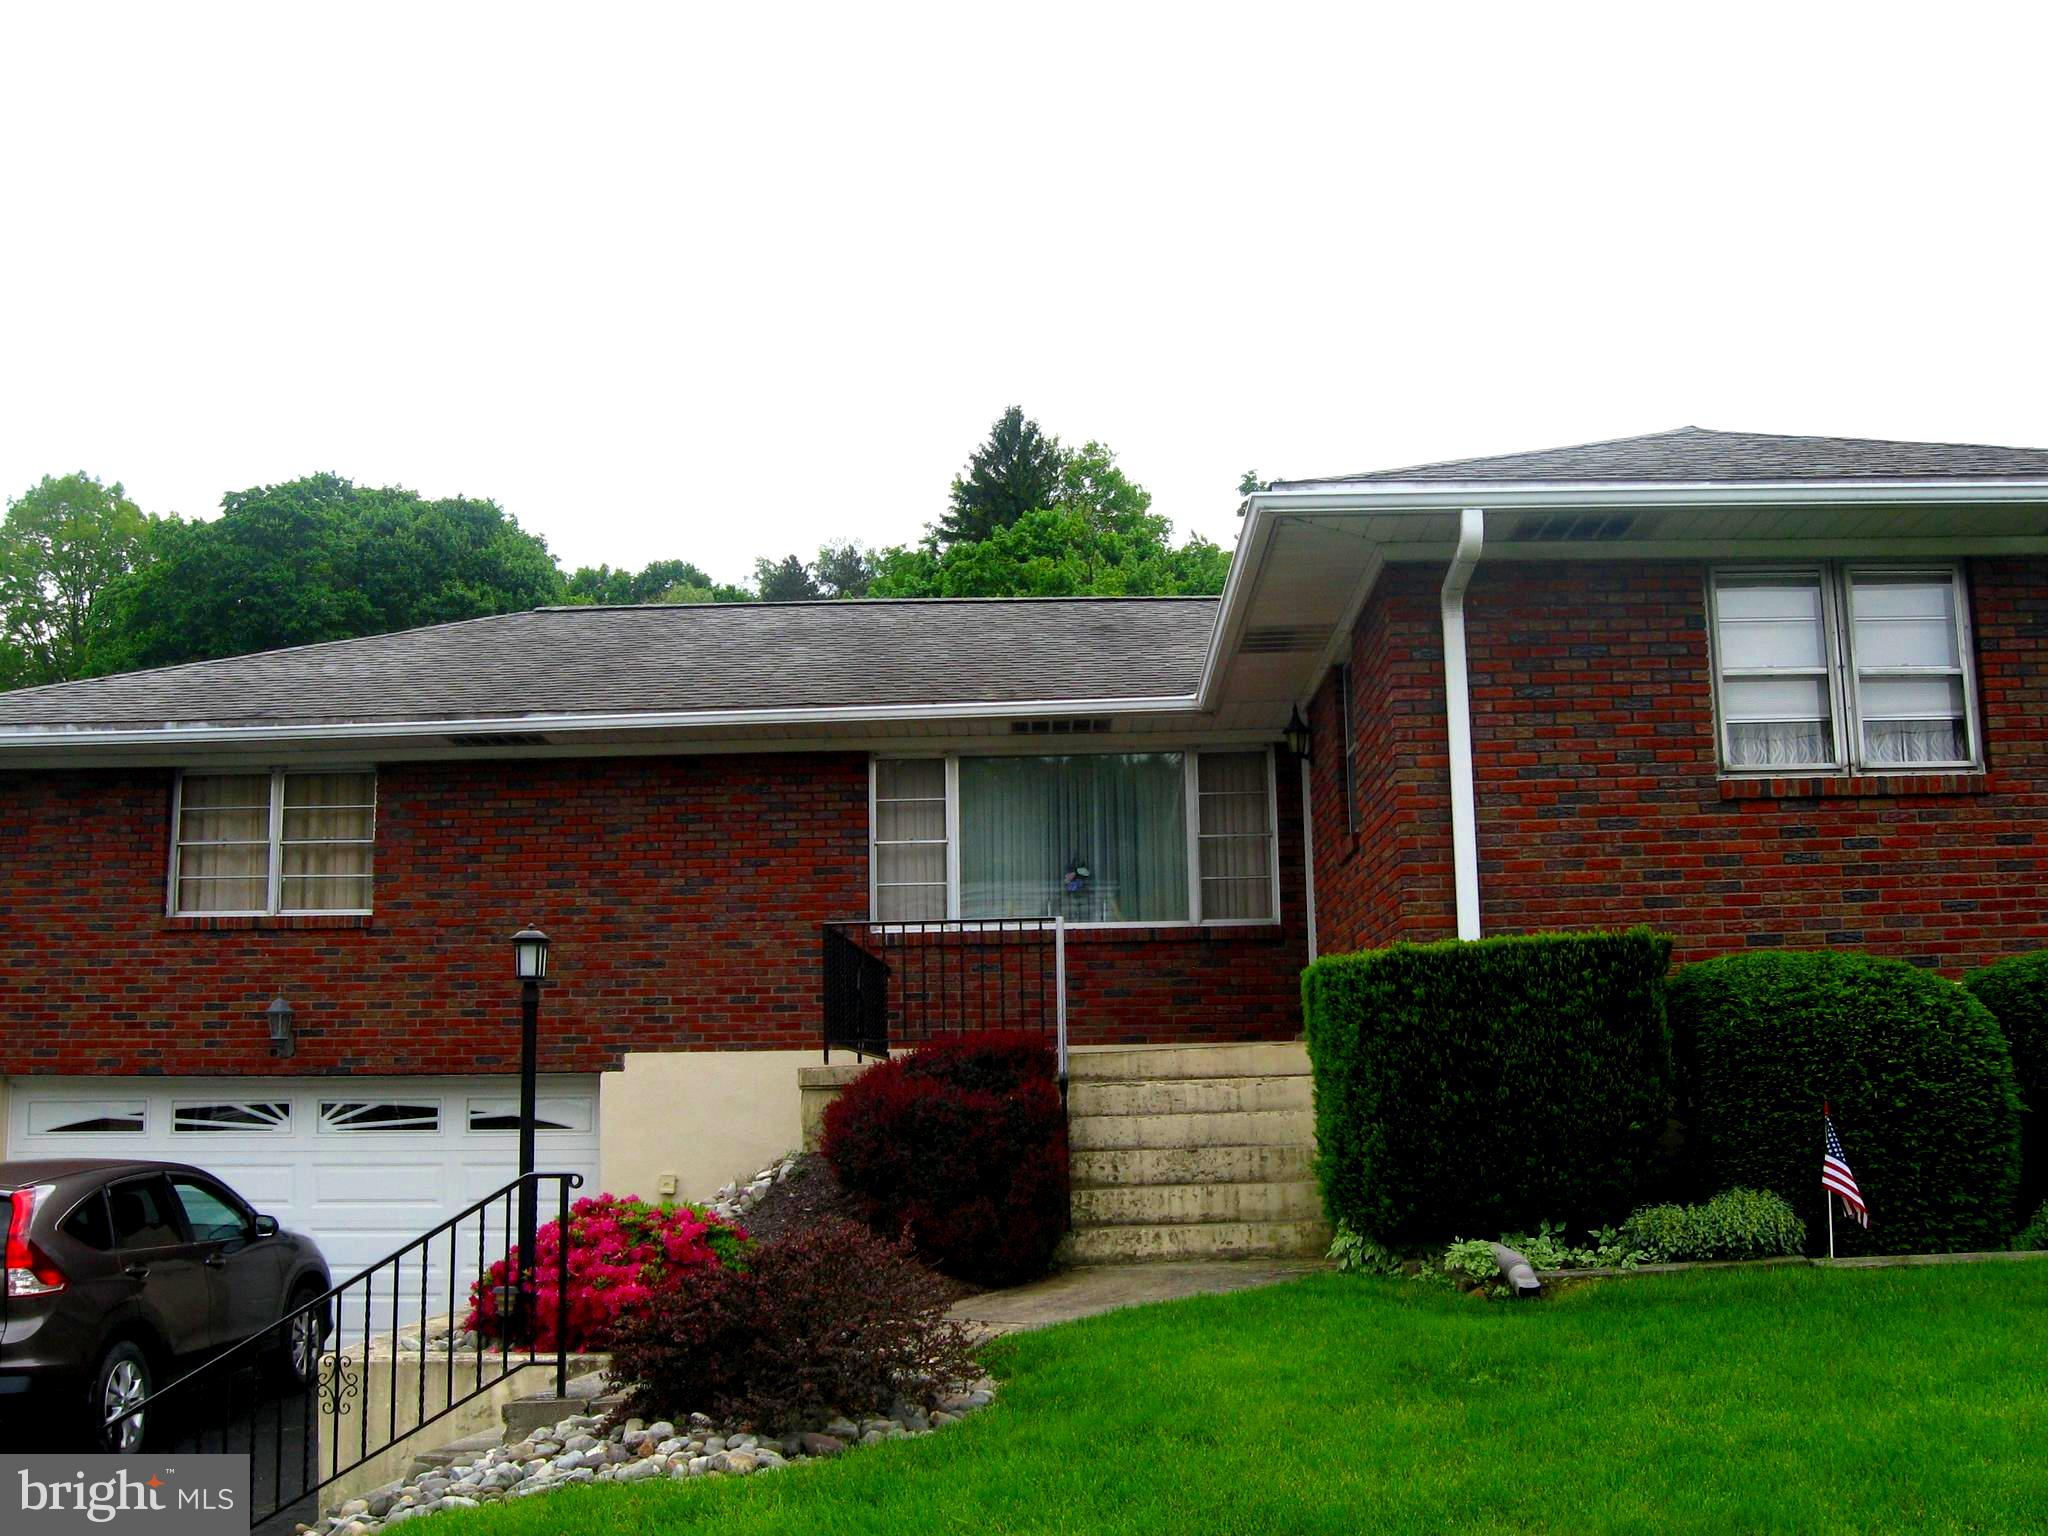 606 WADE ROAD, SAINT CLAIR, PA 17970